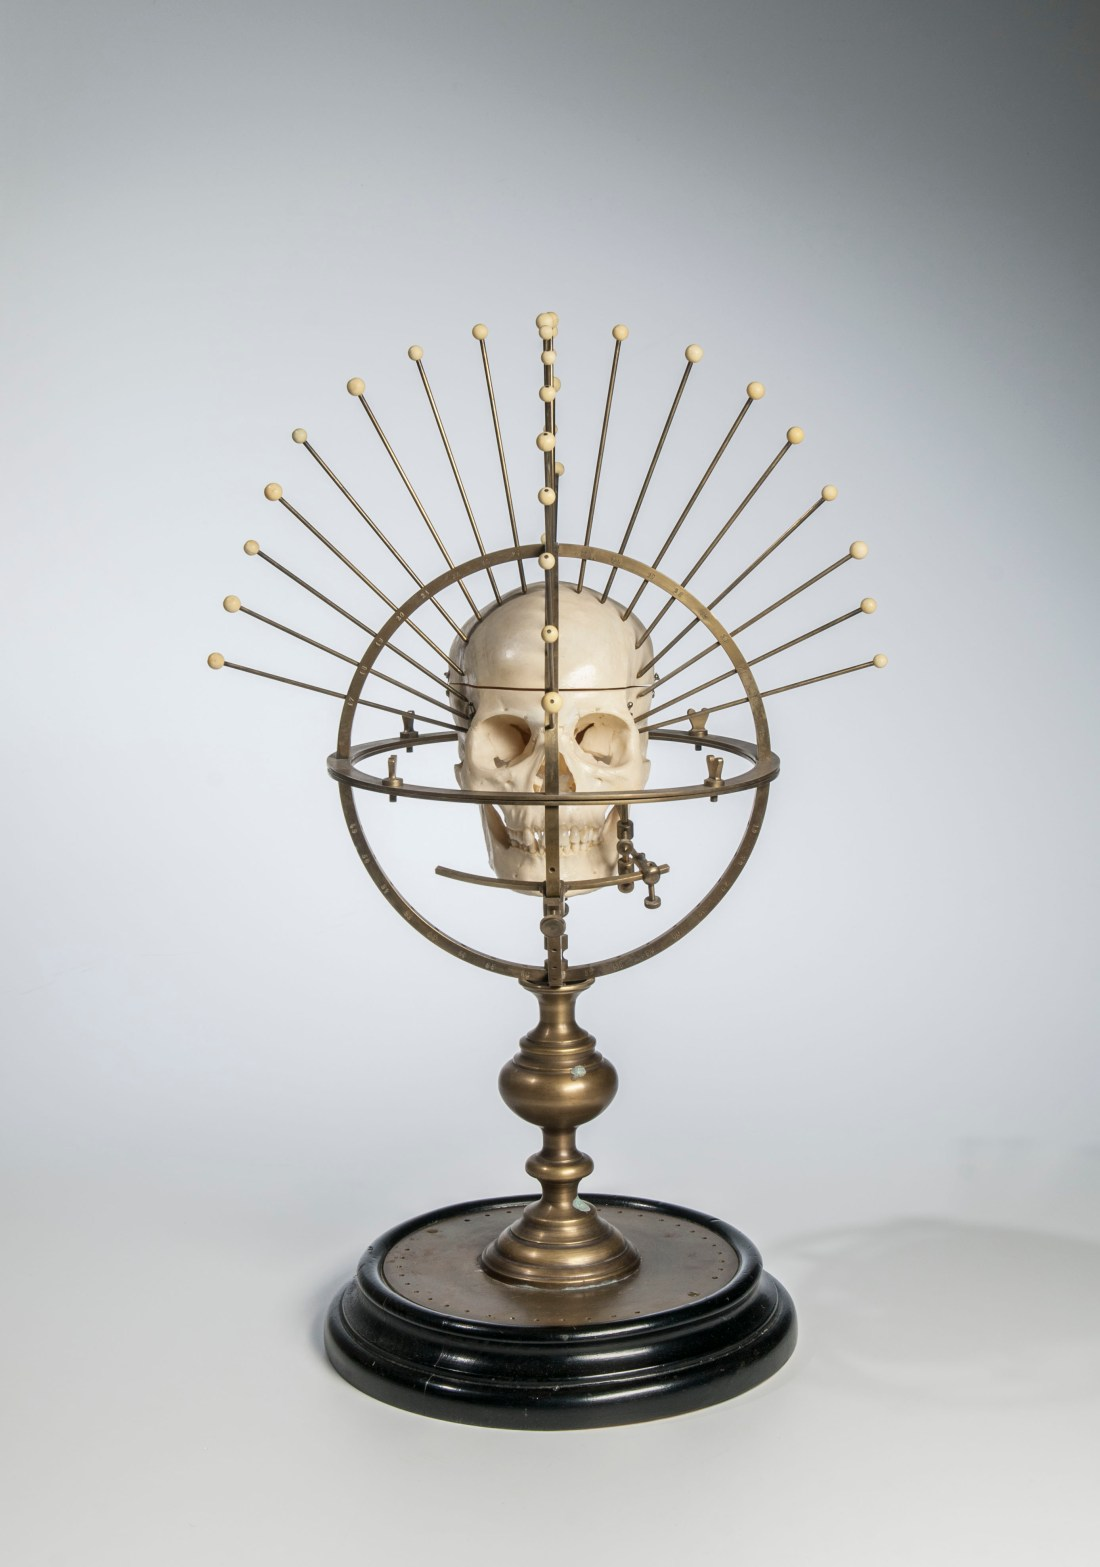 A lacquered brass craniometer, made in the late 19th century by the German company C.F.H. Heineman.